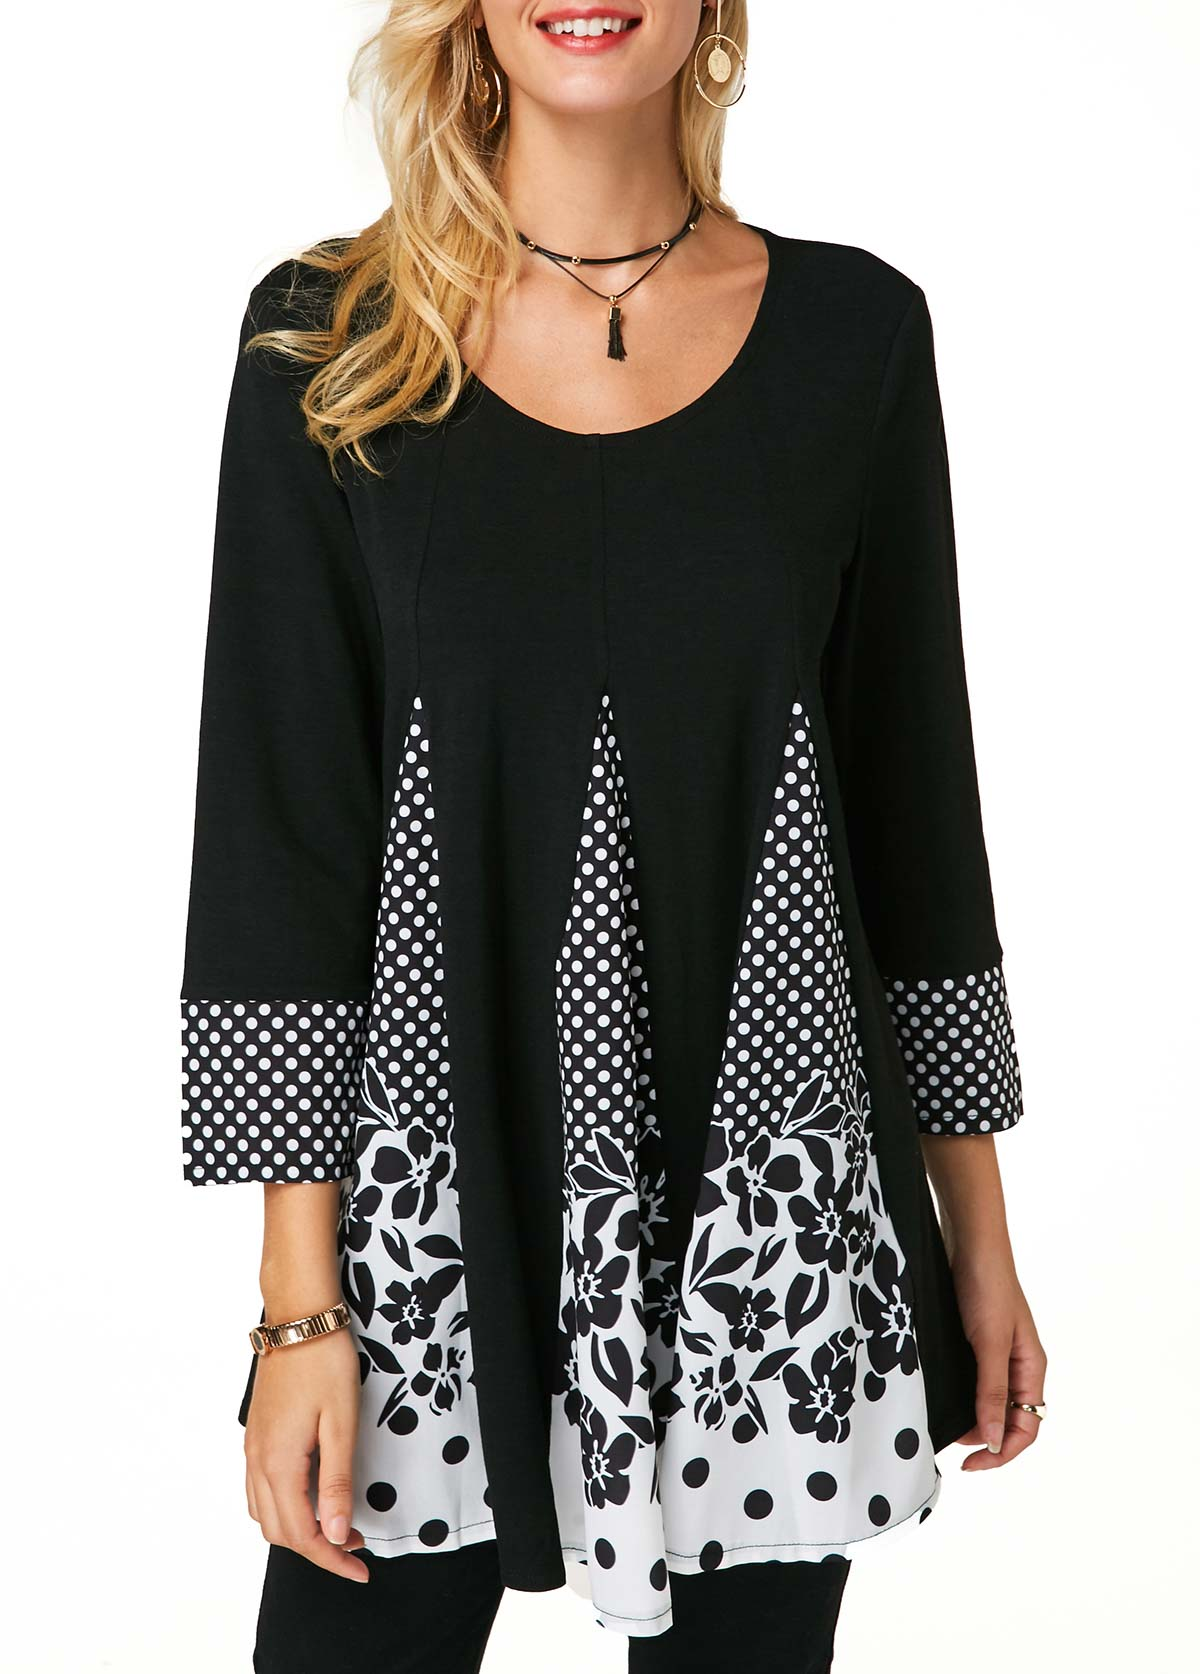 Dot and Flower Print Round Neck T Shirt